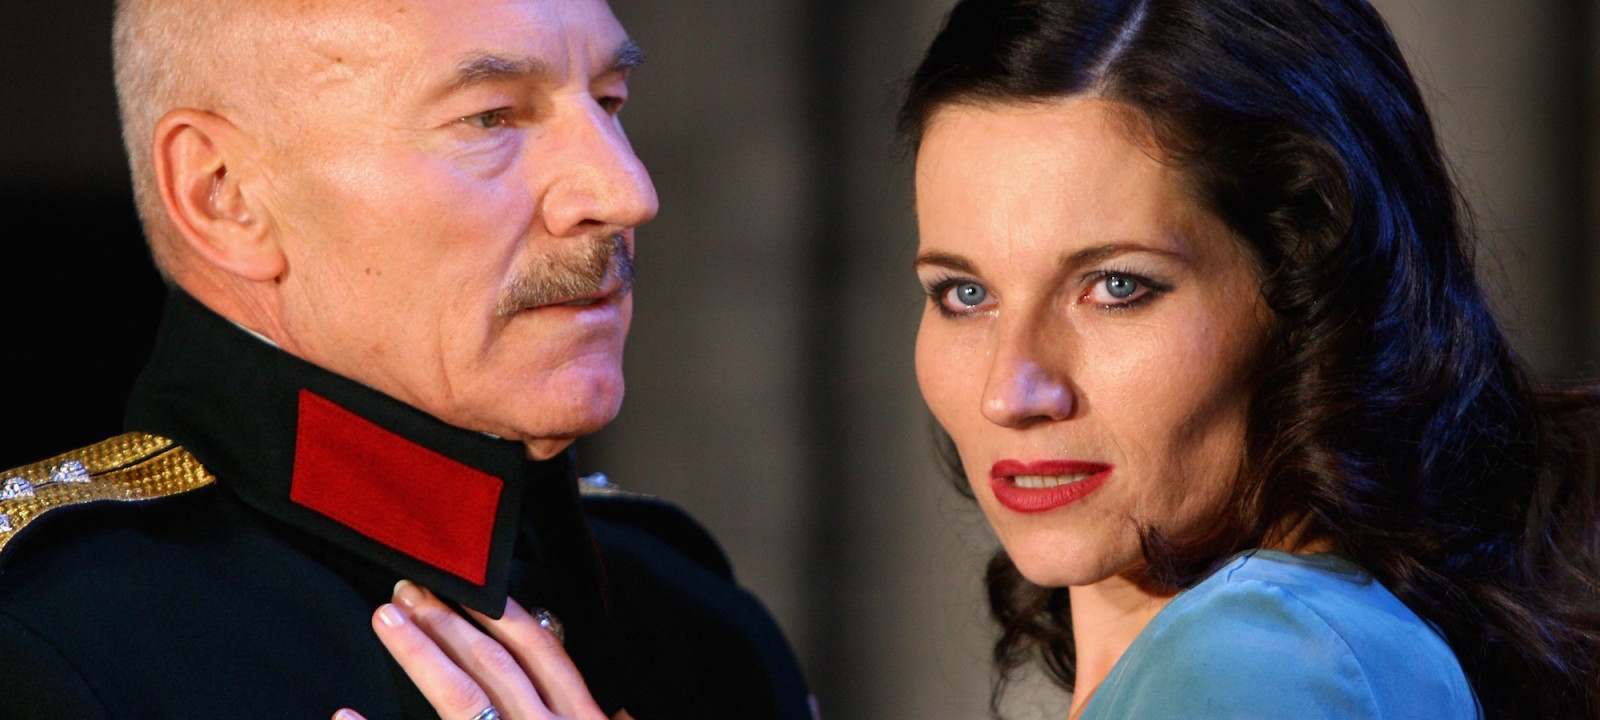 Actor Patrick Stewart and actress Kate Fleetwood perform at the Cast of Macbeth Photocall at the Gielgud Theatre on September 25, 2007 in London, England.